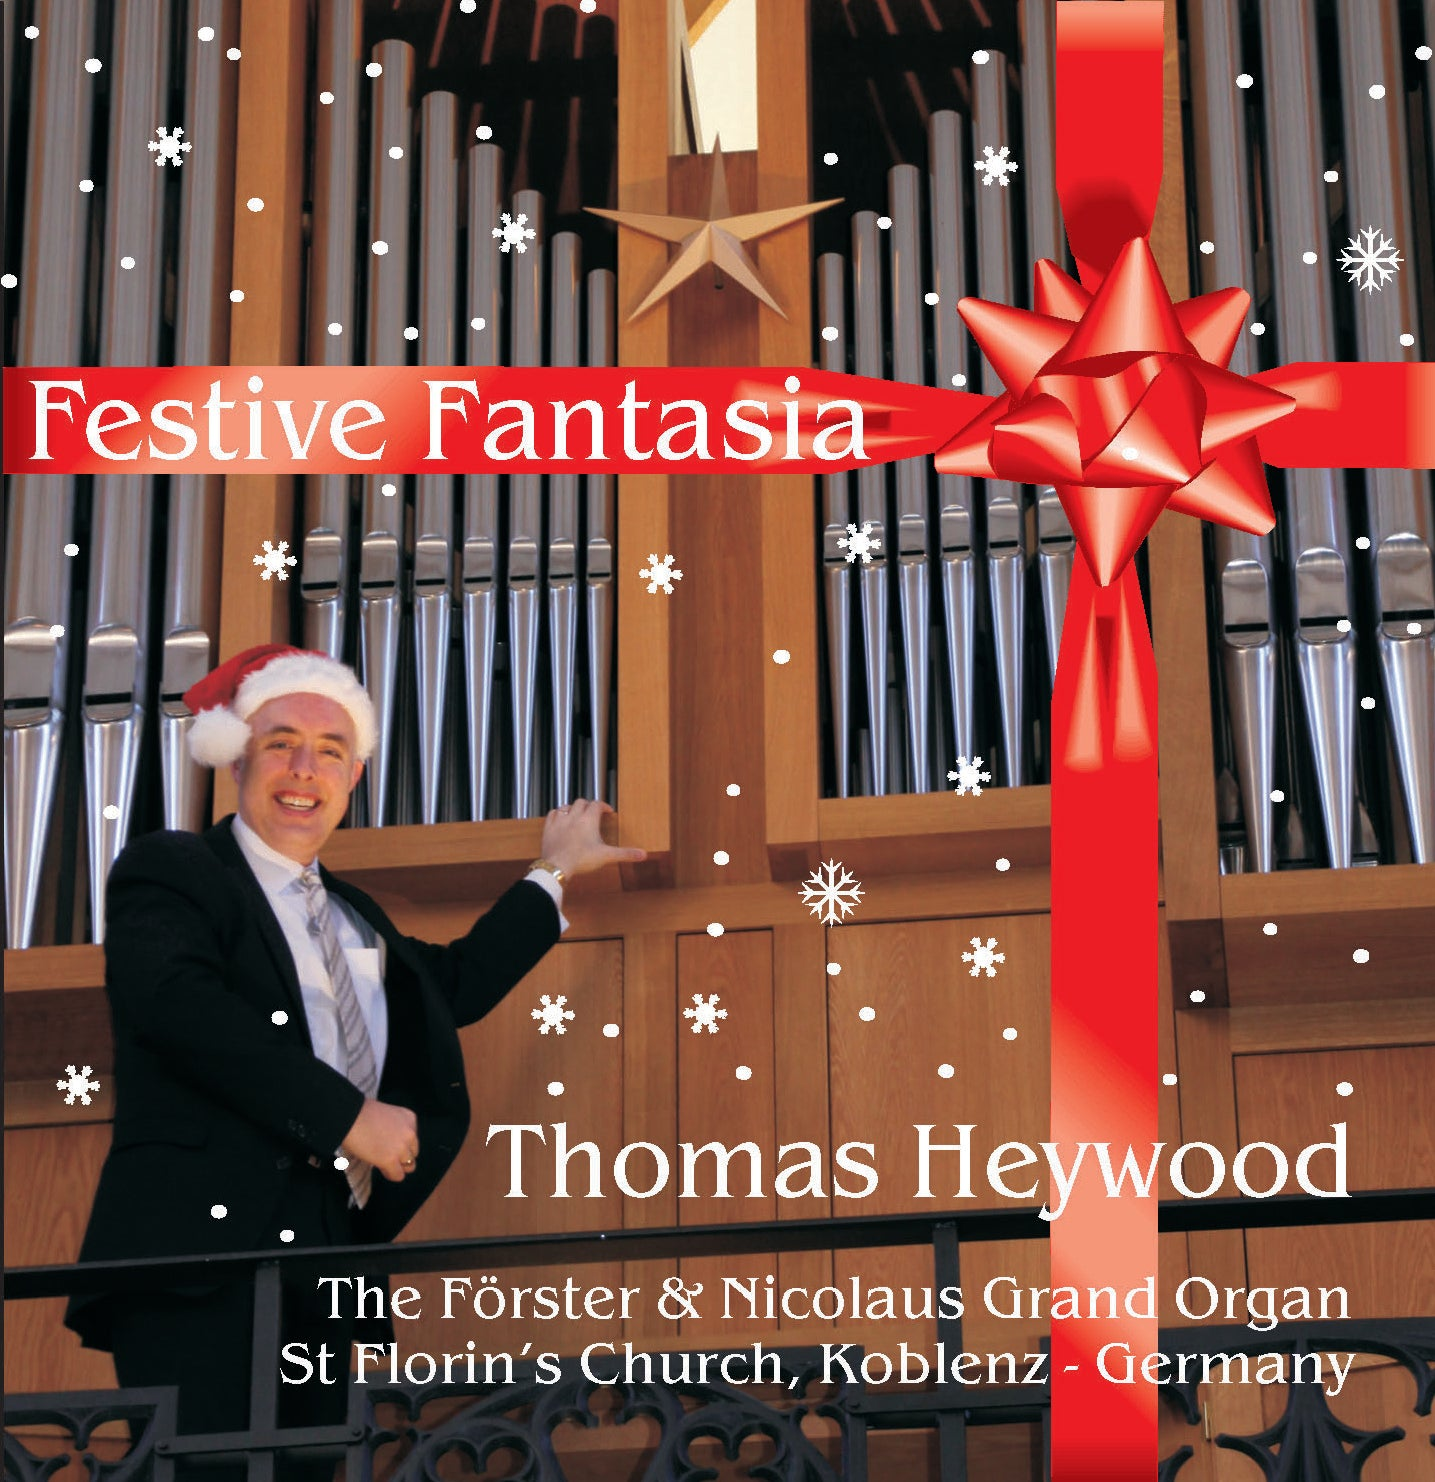 Festive Fantasia (CD) - Concert Organ International